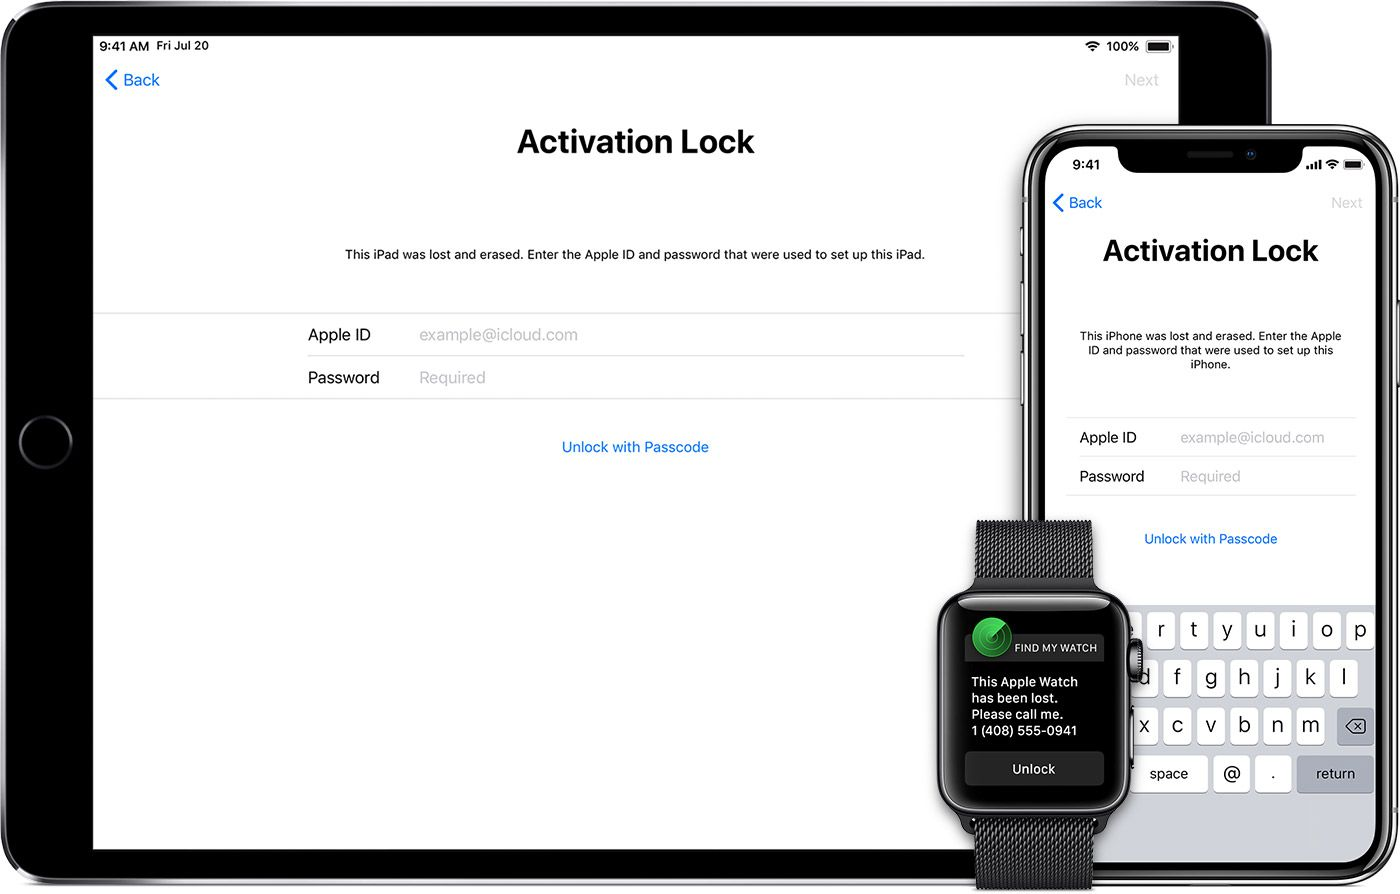 icloud activation lock on an ipad, iphone, and apple watch